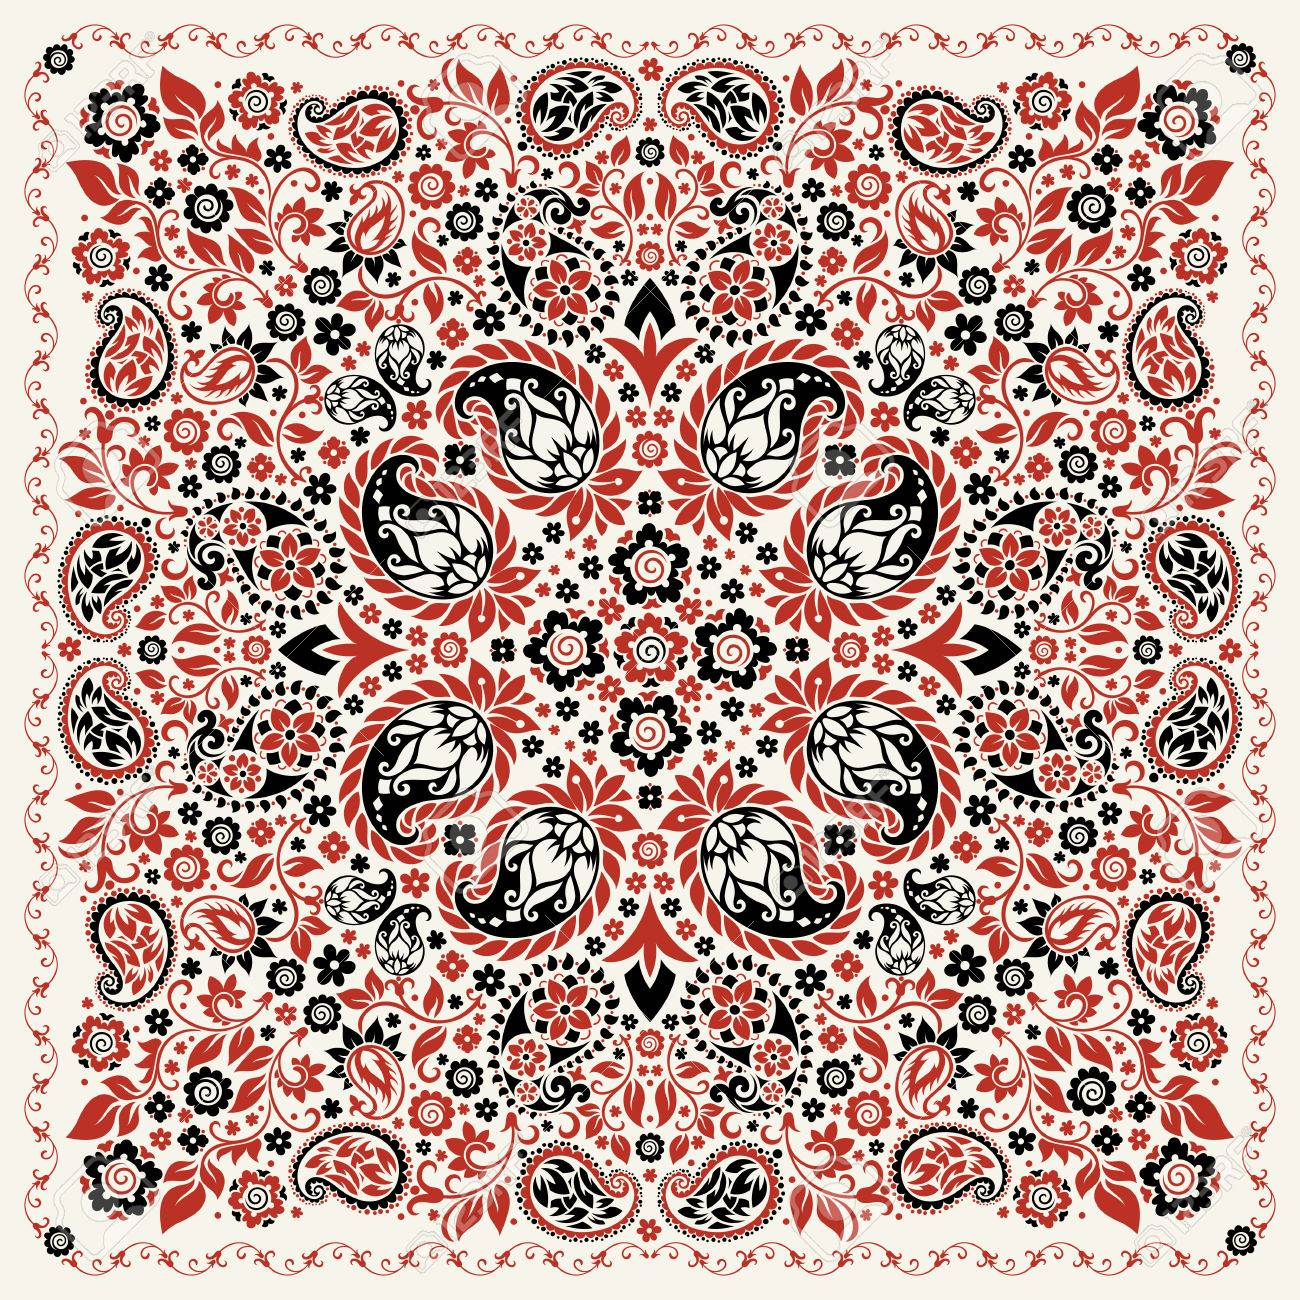 ornament paisley Bandana Print, silk neck scarf or kerchief square pattern design style for print on fabric. - 56401285